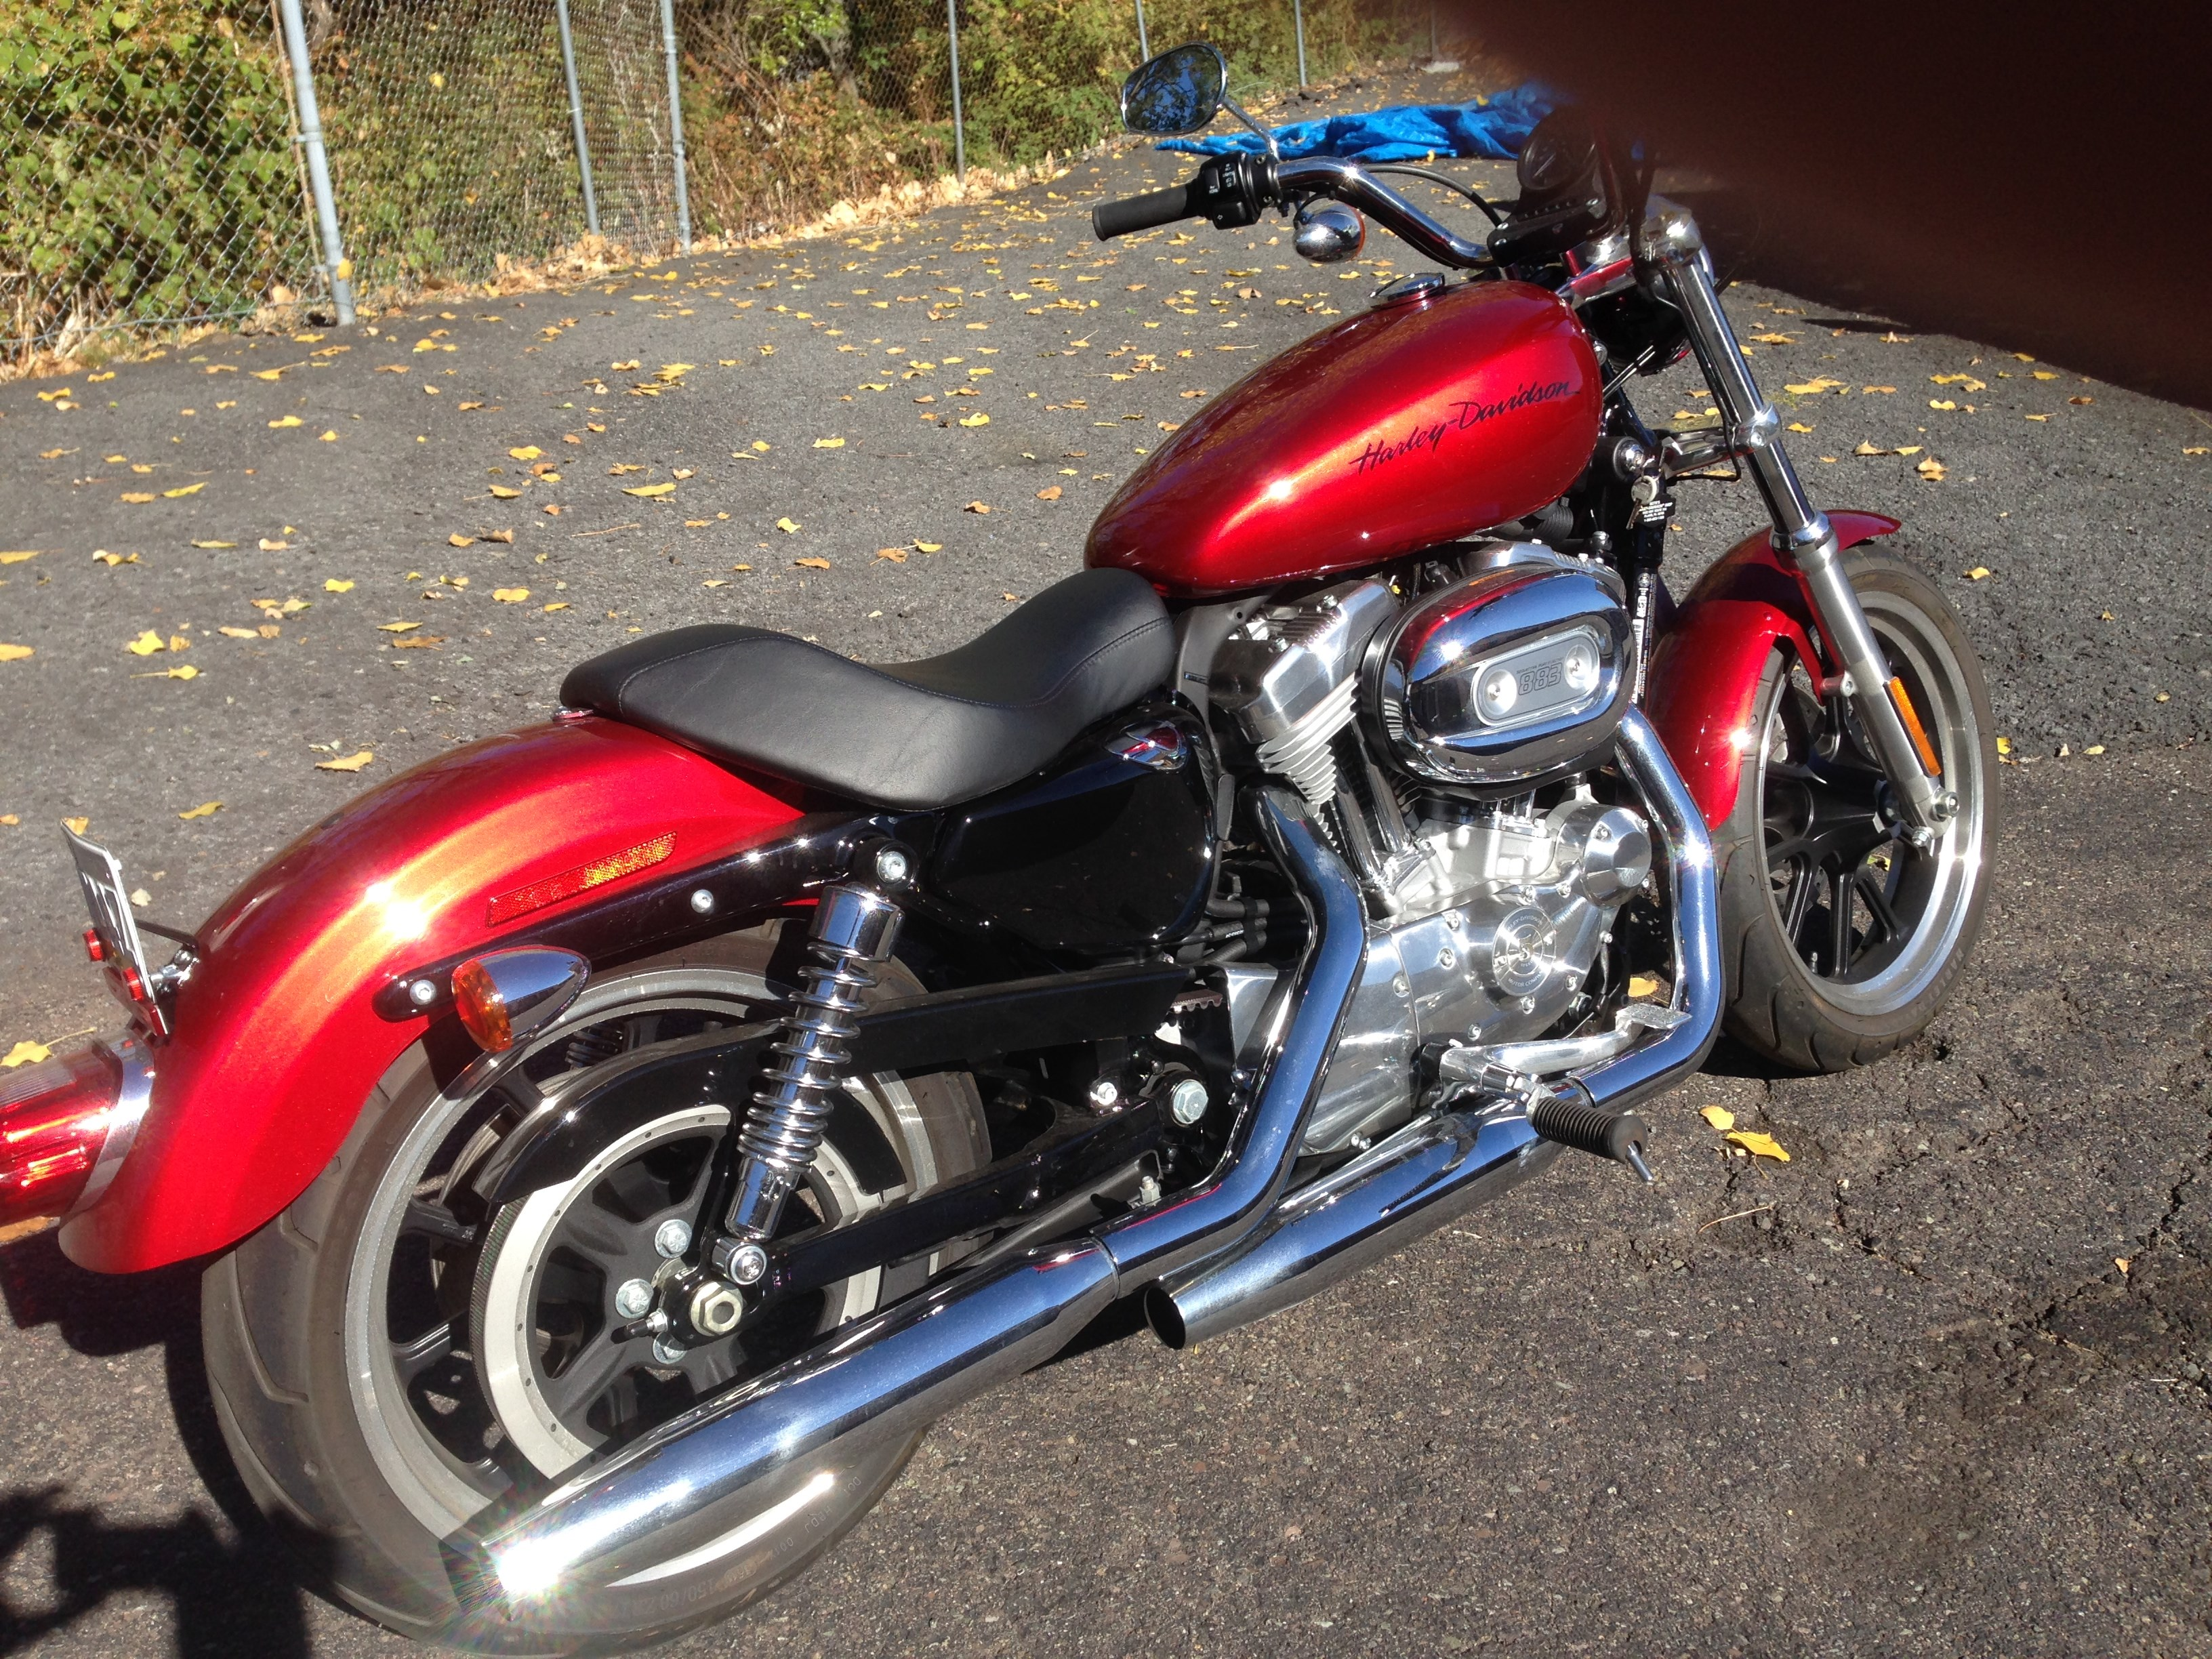 all new used harley davidson sportster 883 1 244 bikes page 1 chopperexchange. Black Bedroom Furniture Sets. Home Design Ideas